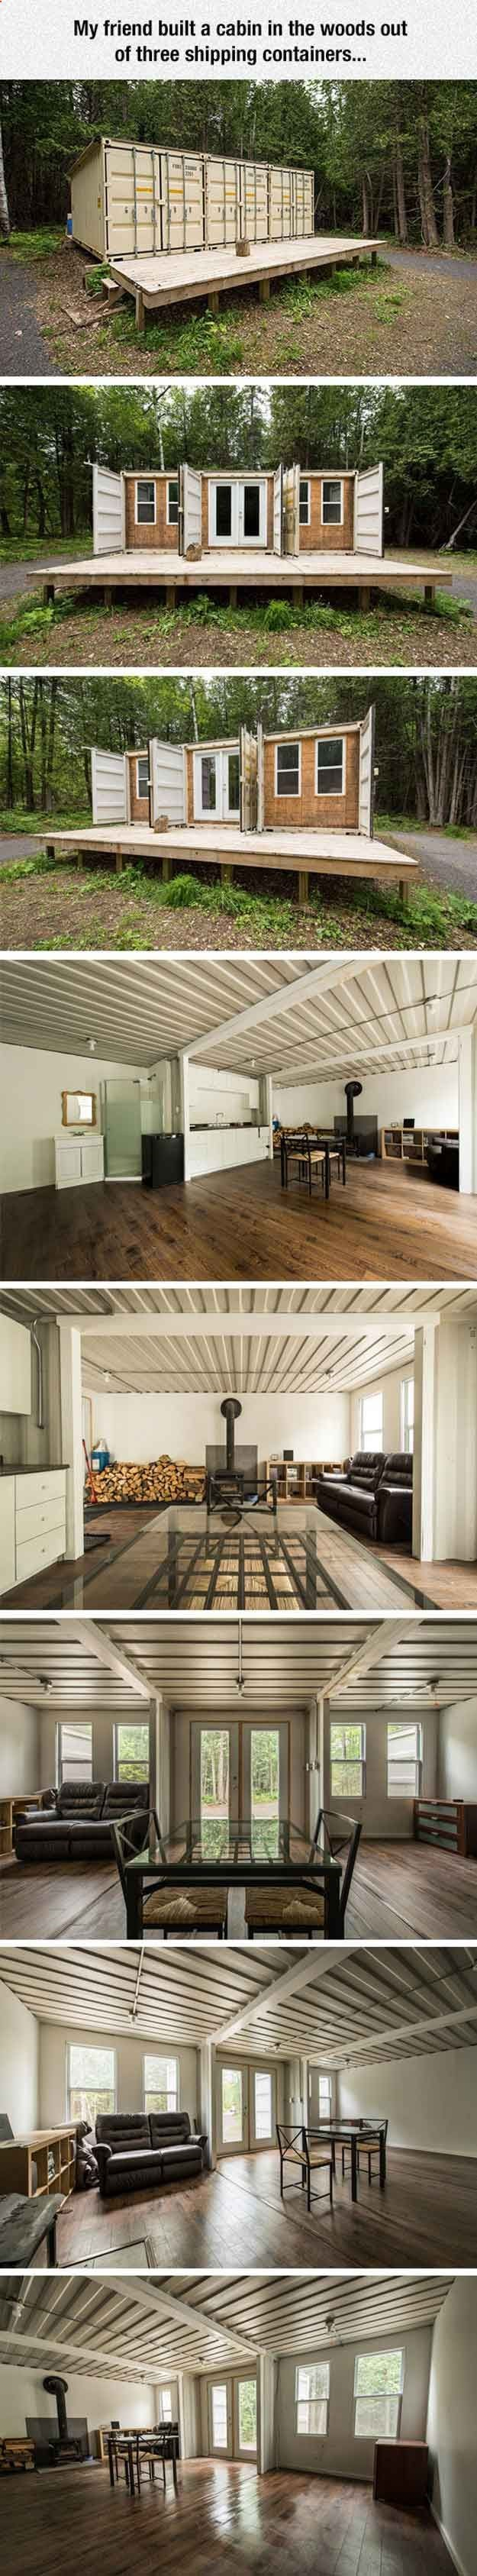 Container house cool shipping container cabin cool container